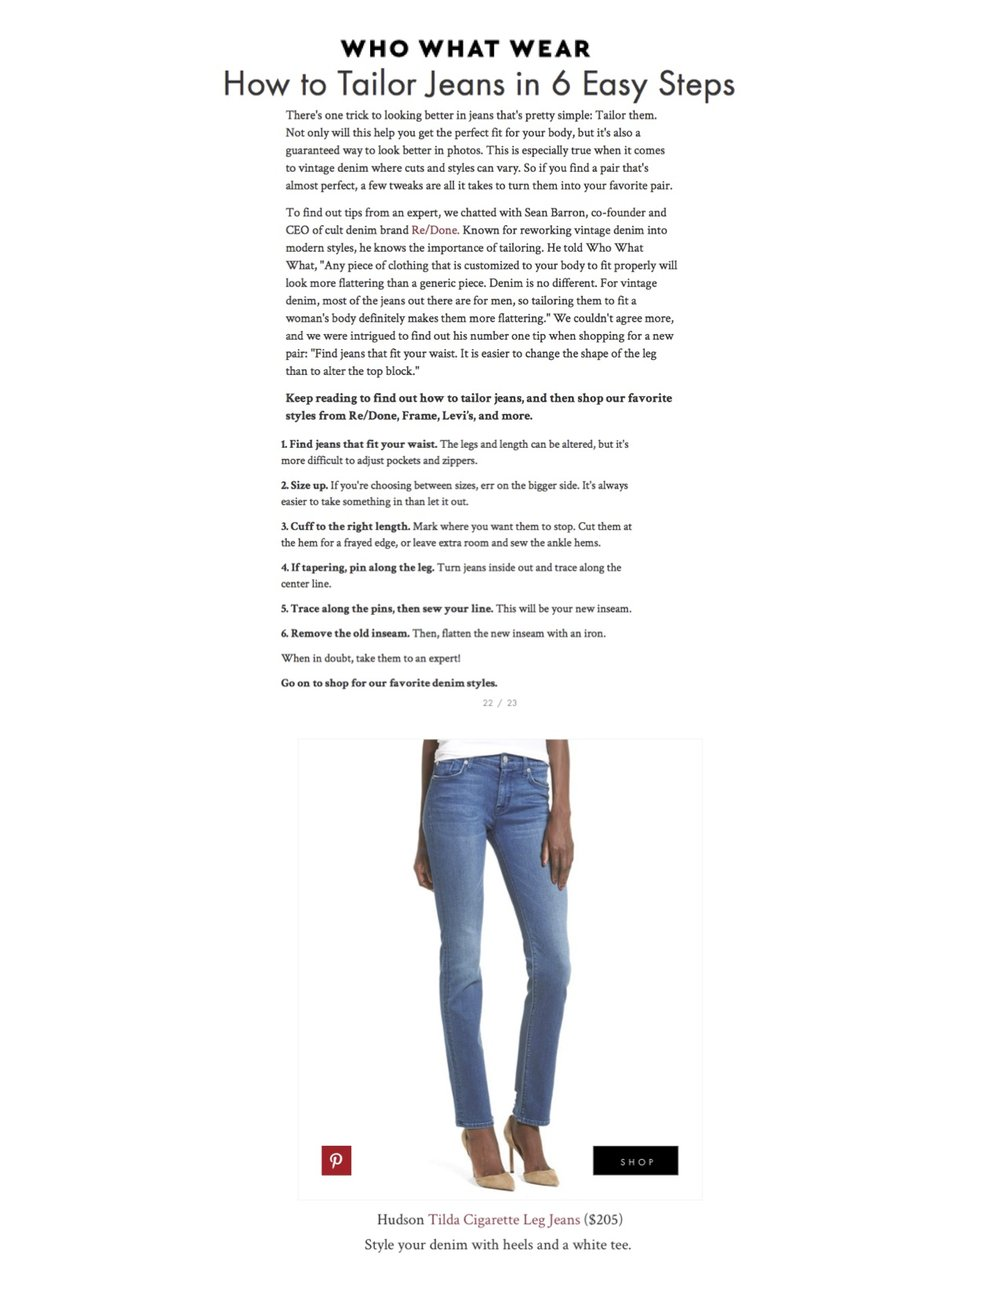 Who What Wear - How To Tailor Jeans - Hudson.jpg